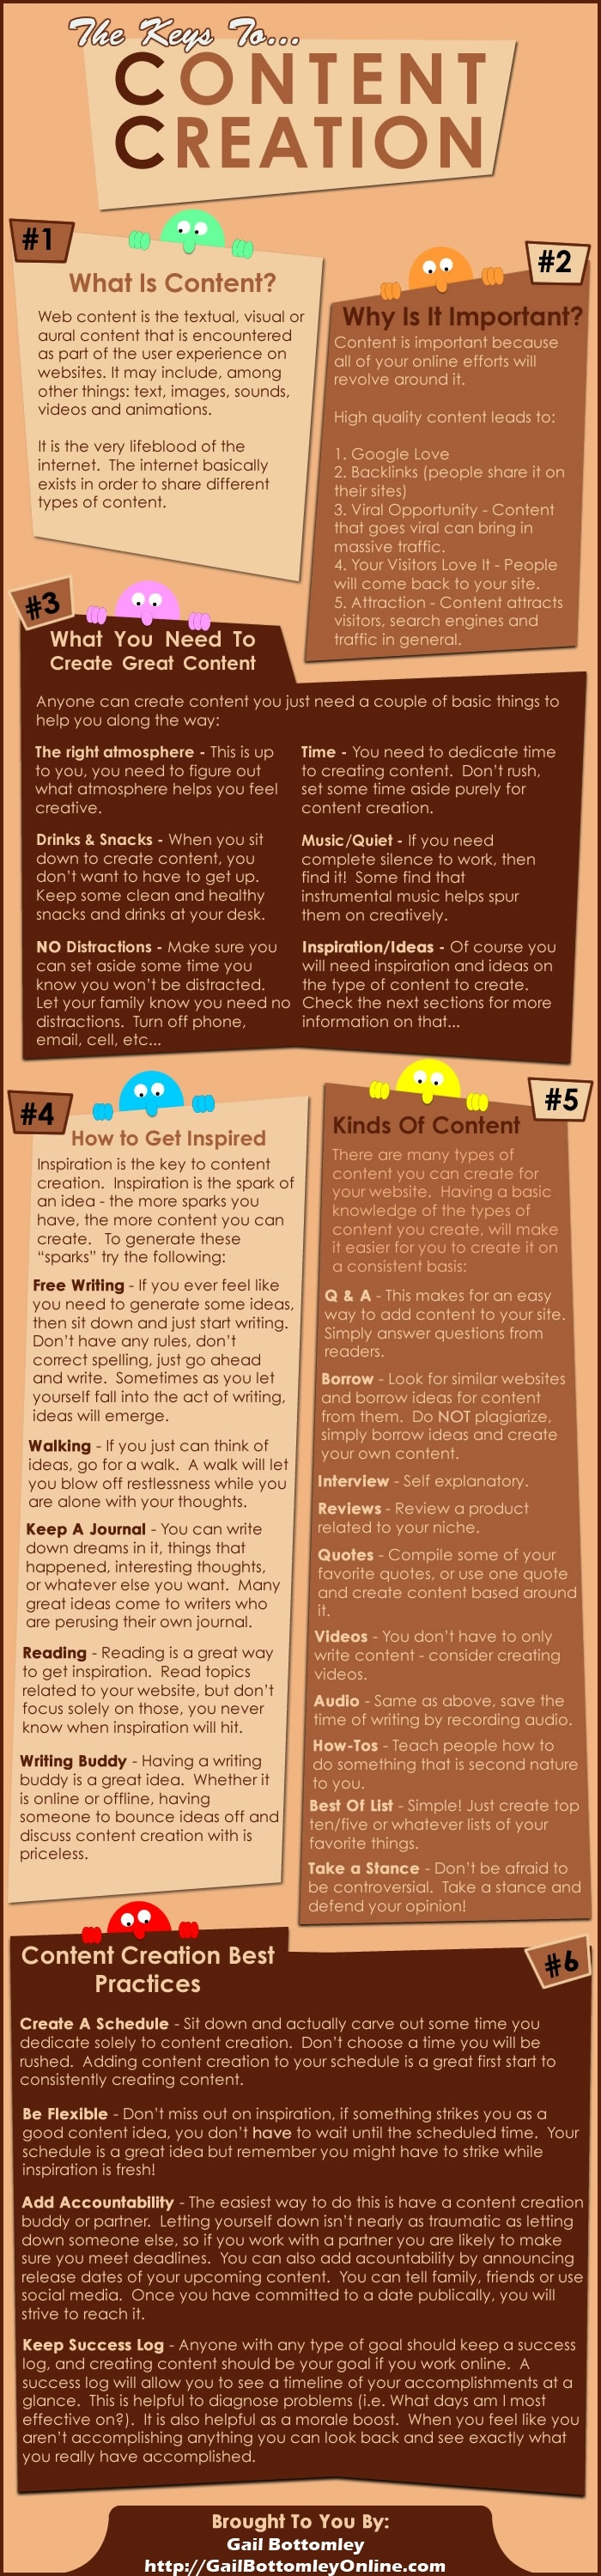 The Keys to great Content creation Infographic...  http://gailbottomleyonline.com/